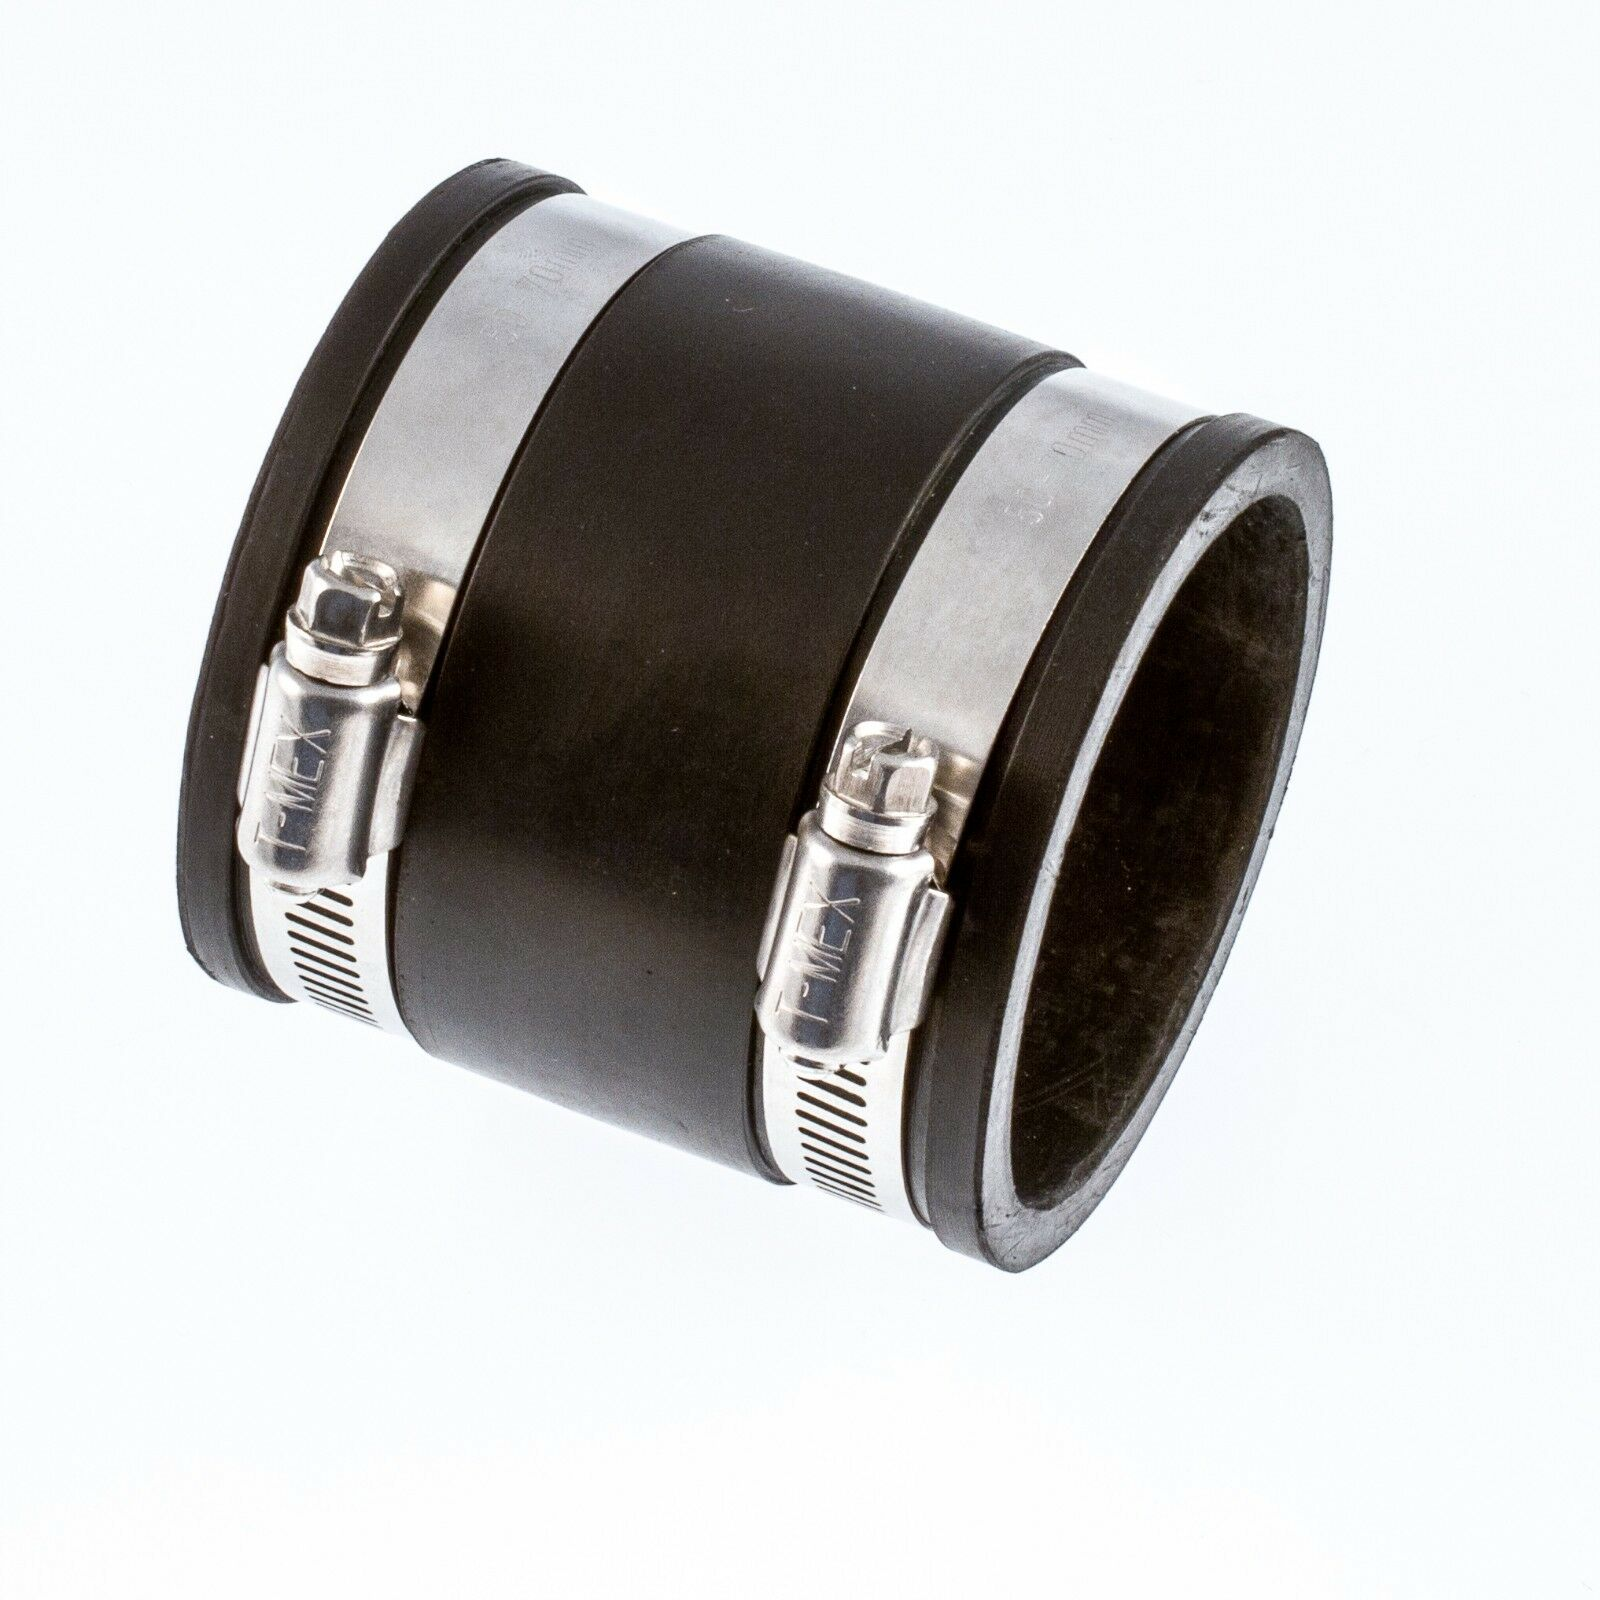 Flexible Rubber Couplers : Straight Connectors Drainage Ponds - 25mm To 315mm